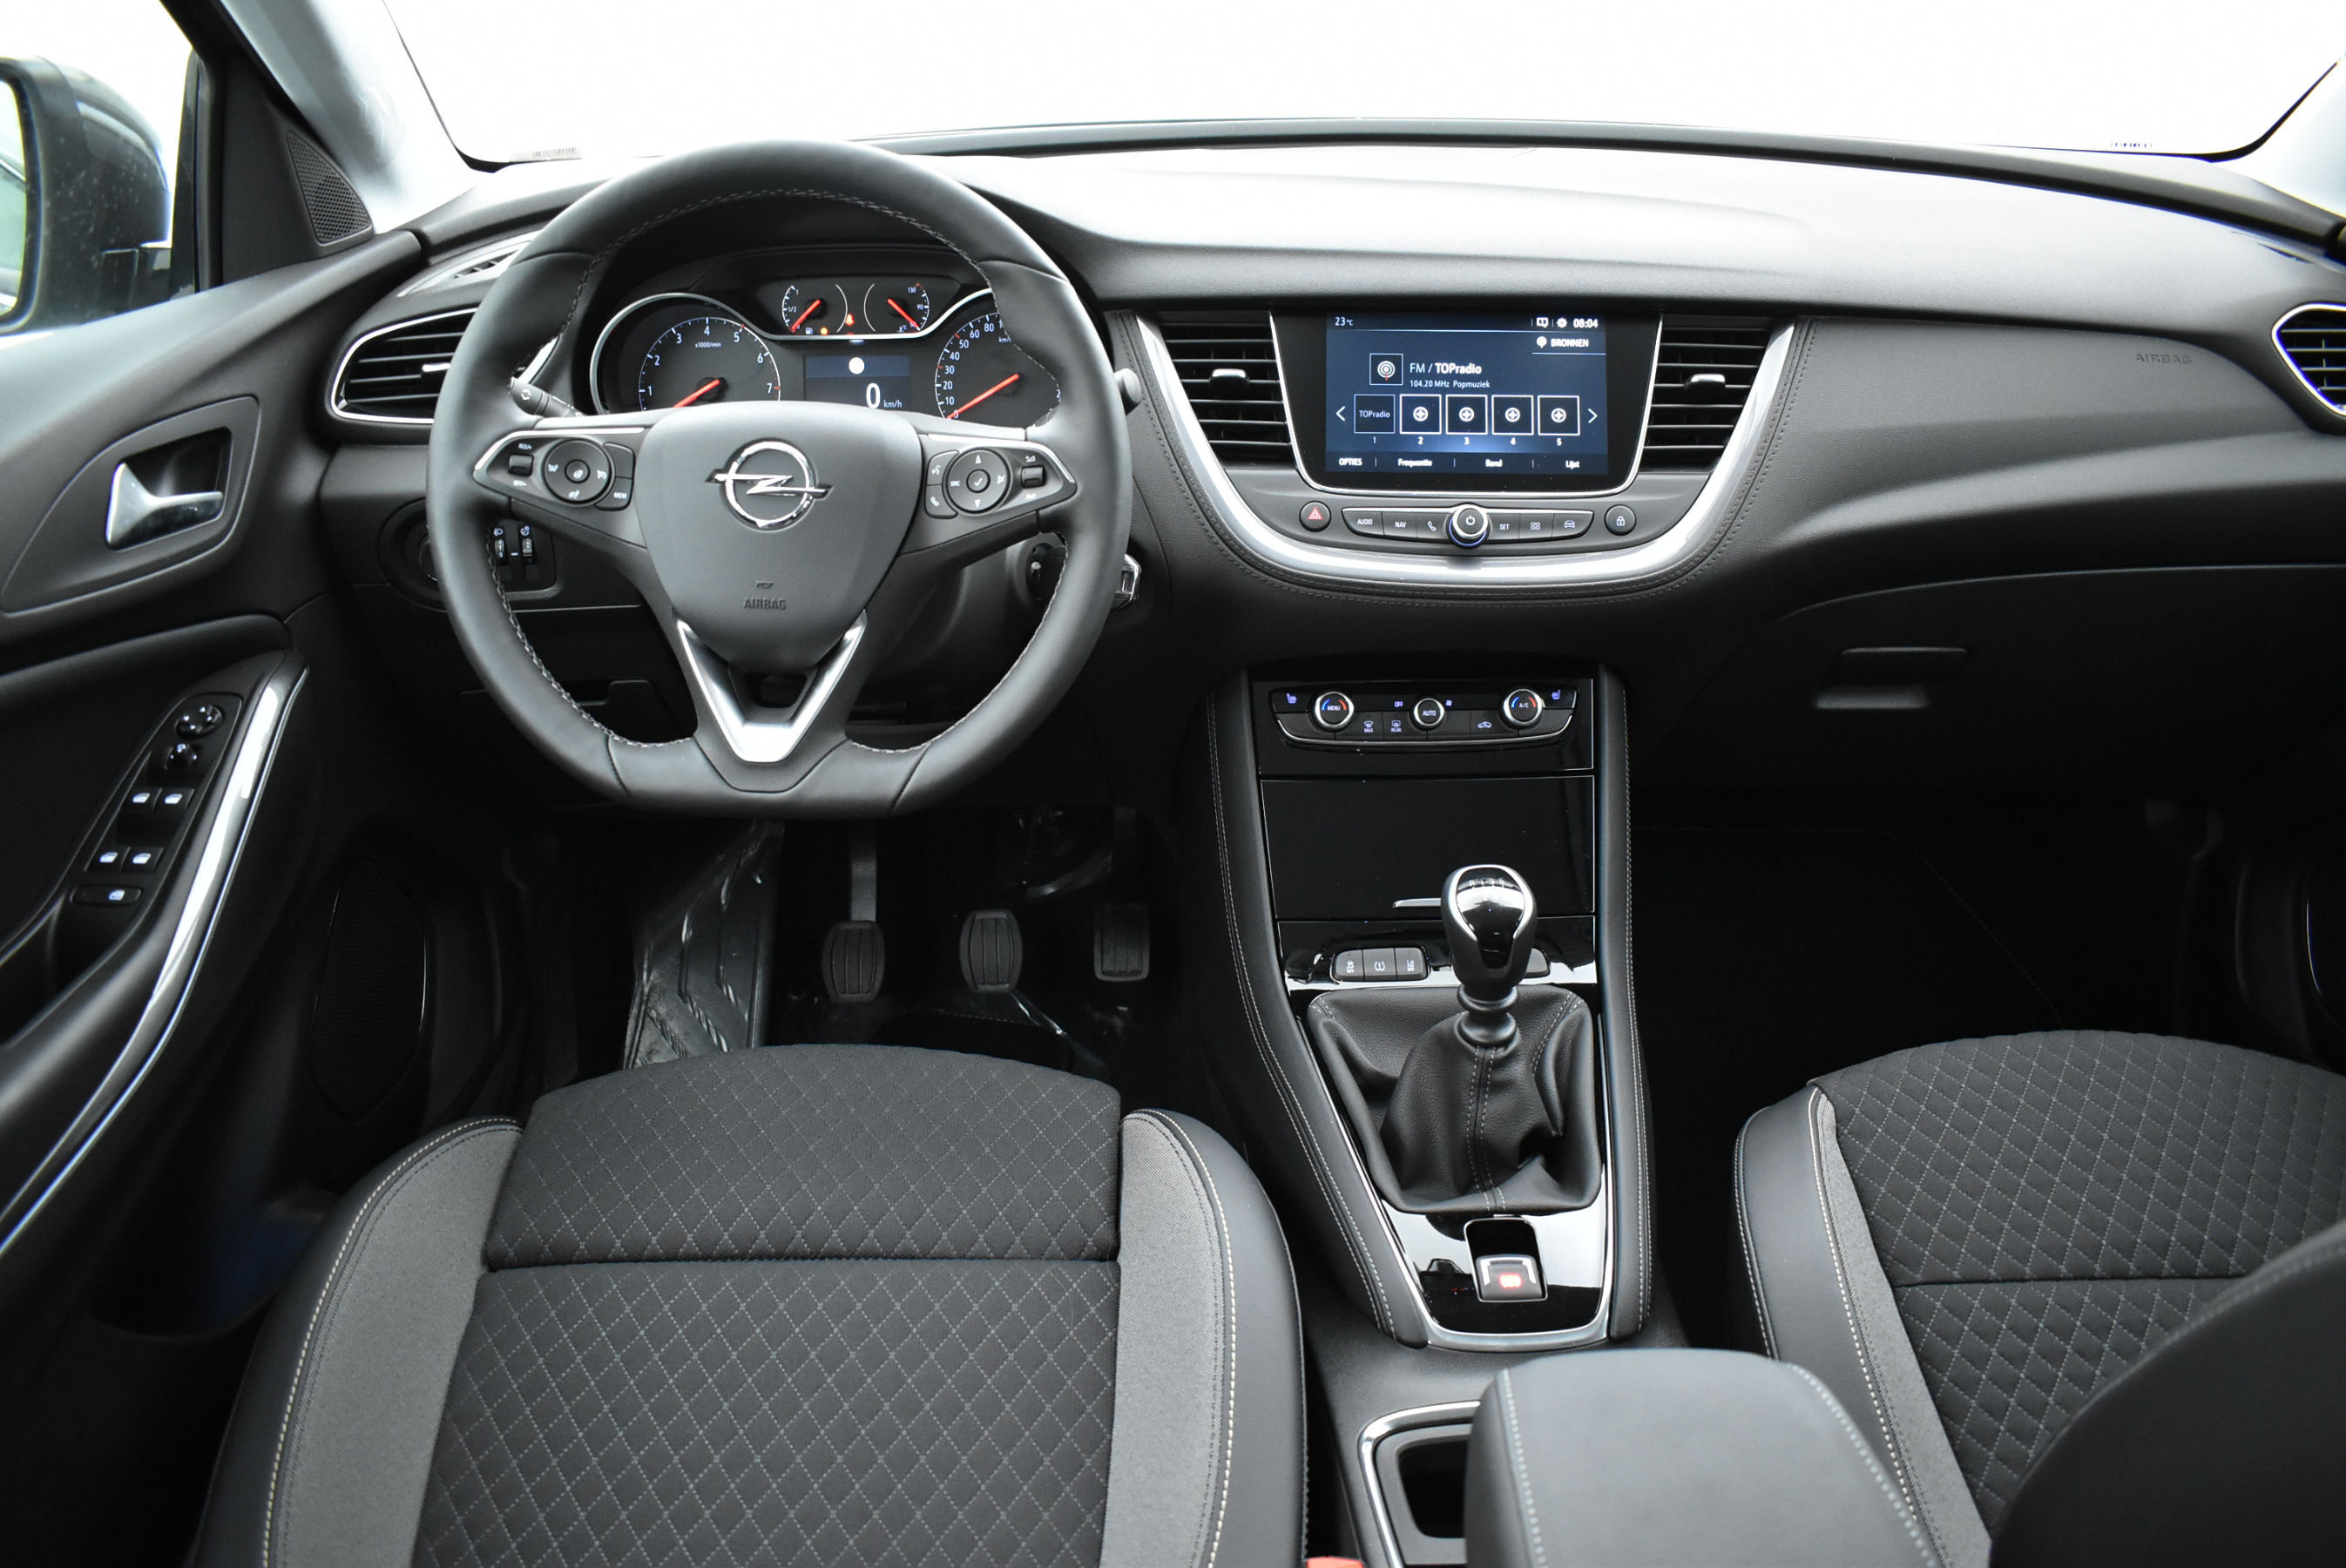 Opel Grandland X turbo ecotec innovation S&S 130